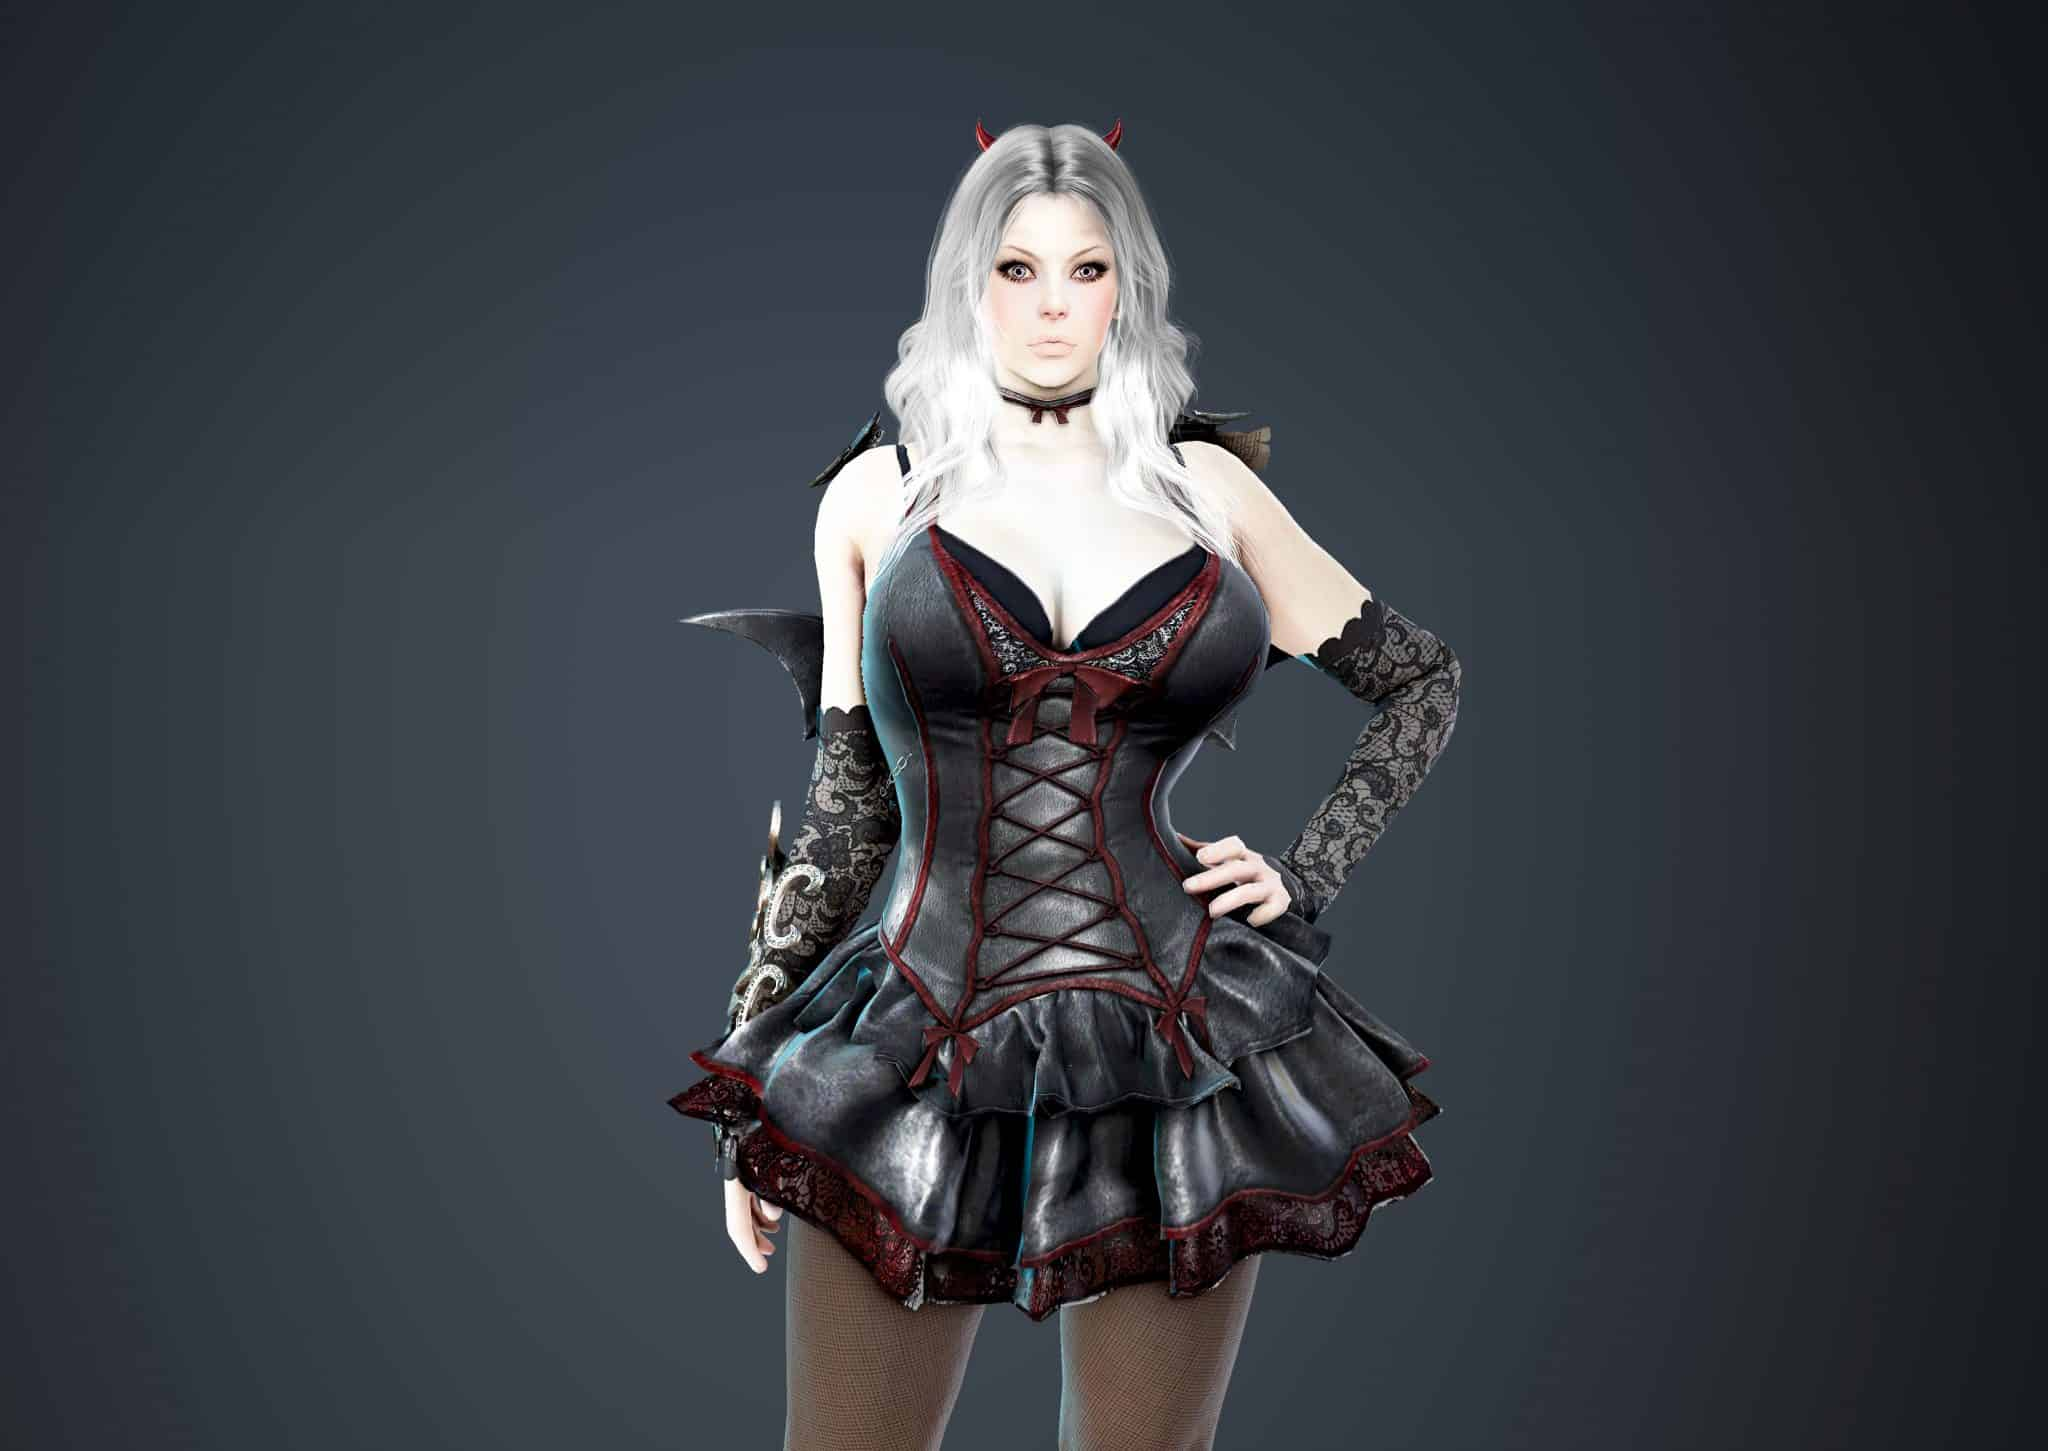 Sorceress Bloody Dress, Bloody Outfit Set, Halloween 2018, Black Desert Online